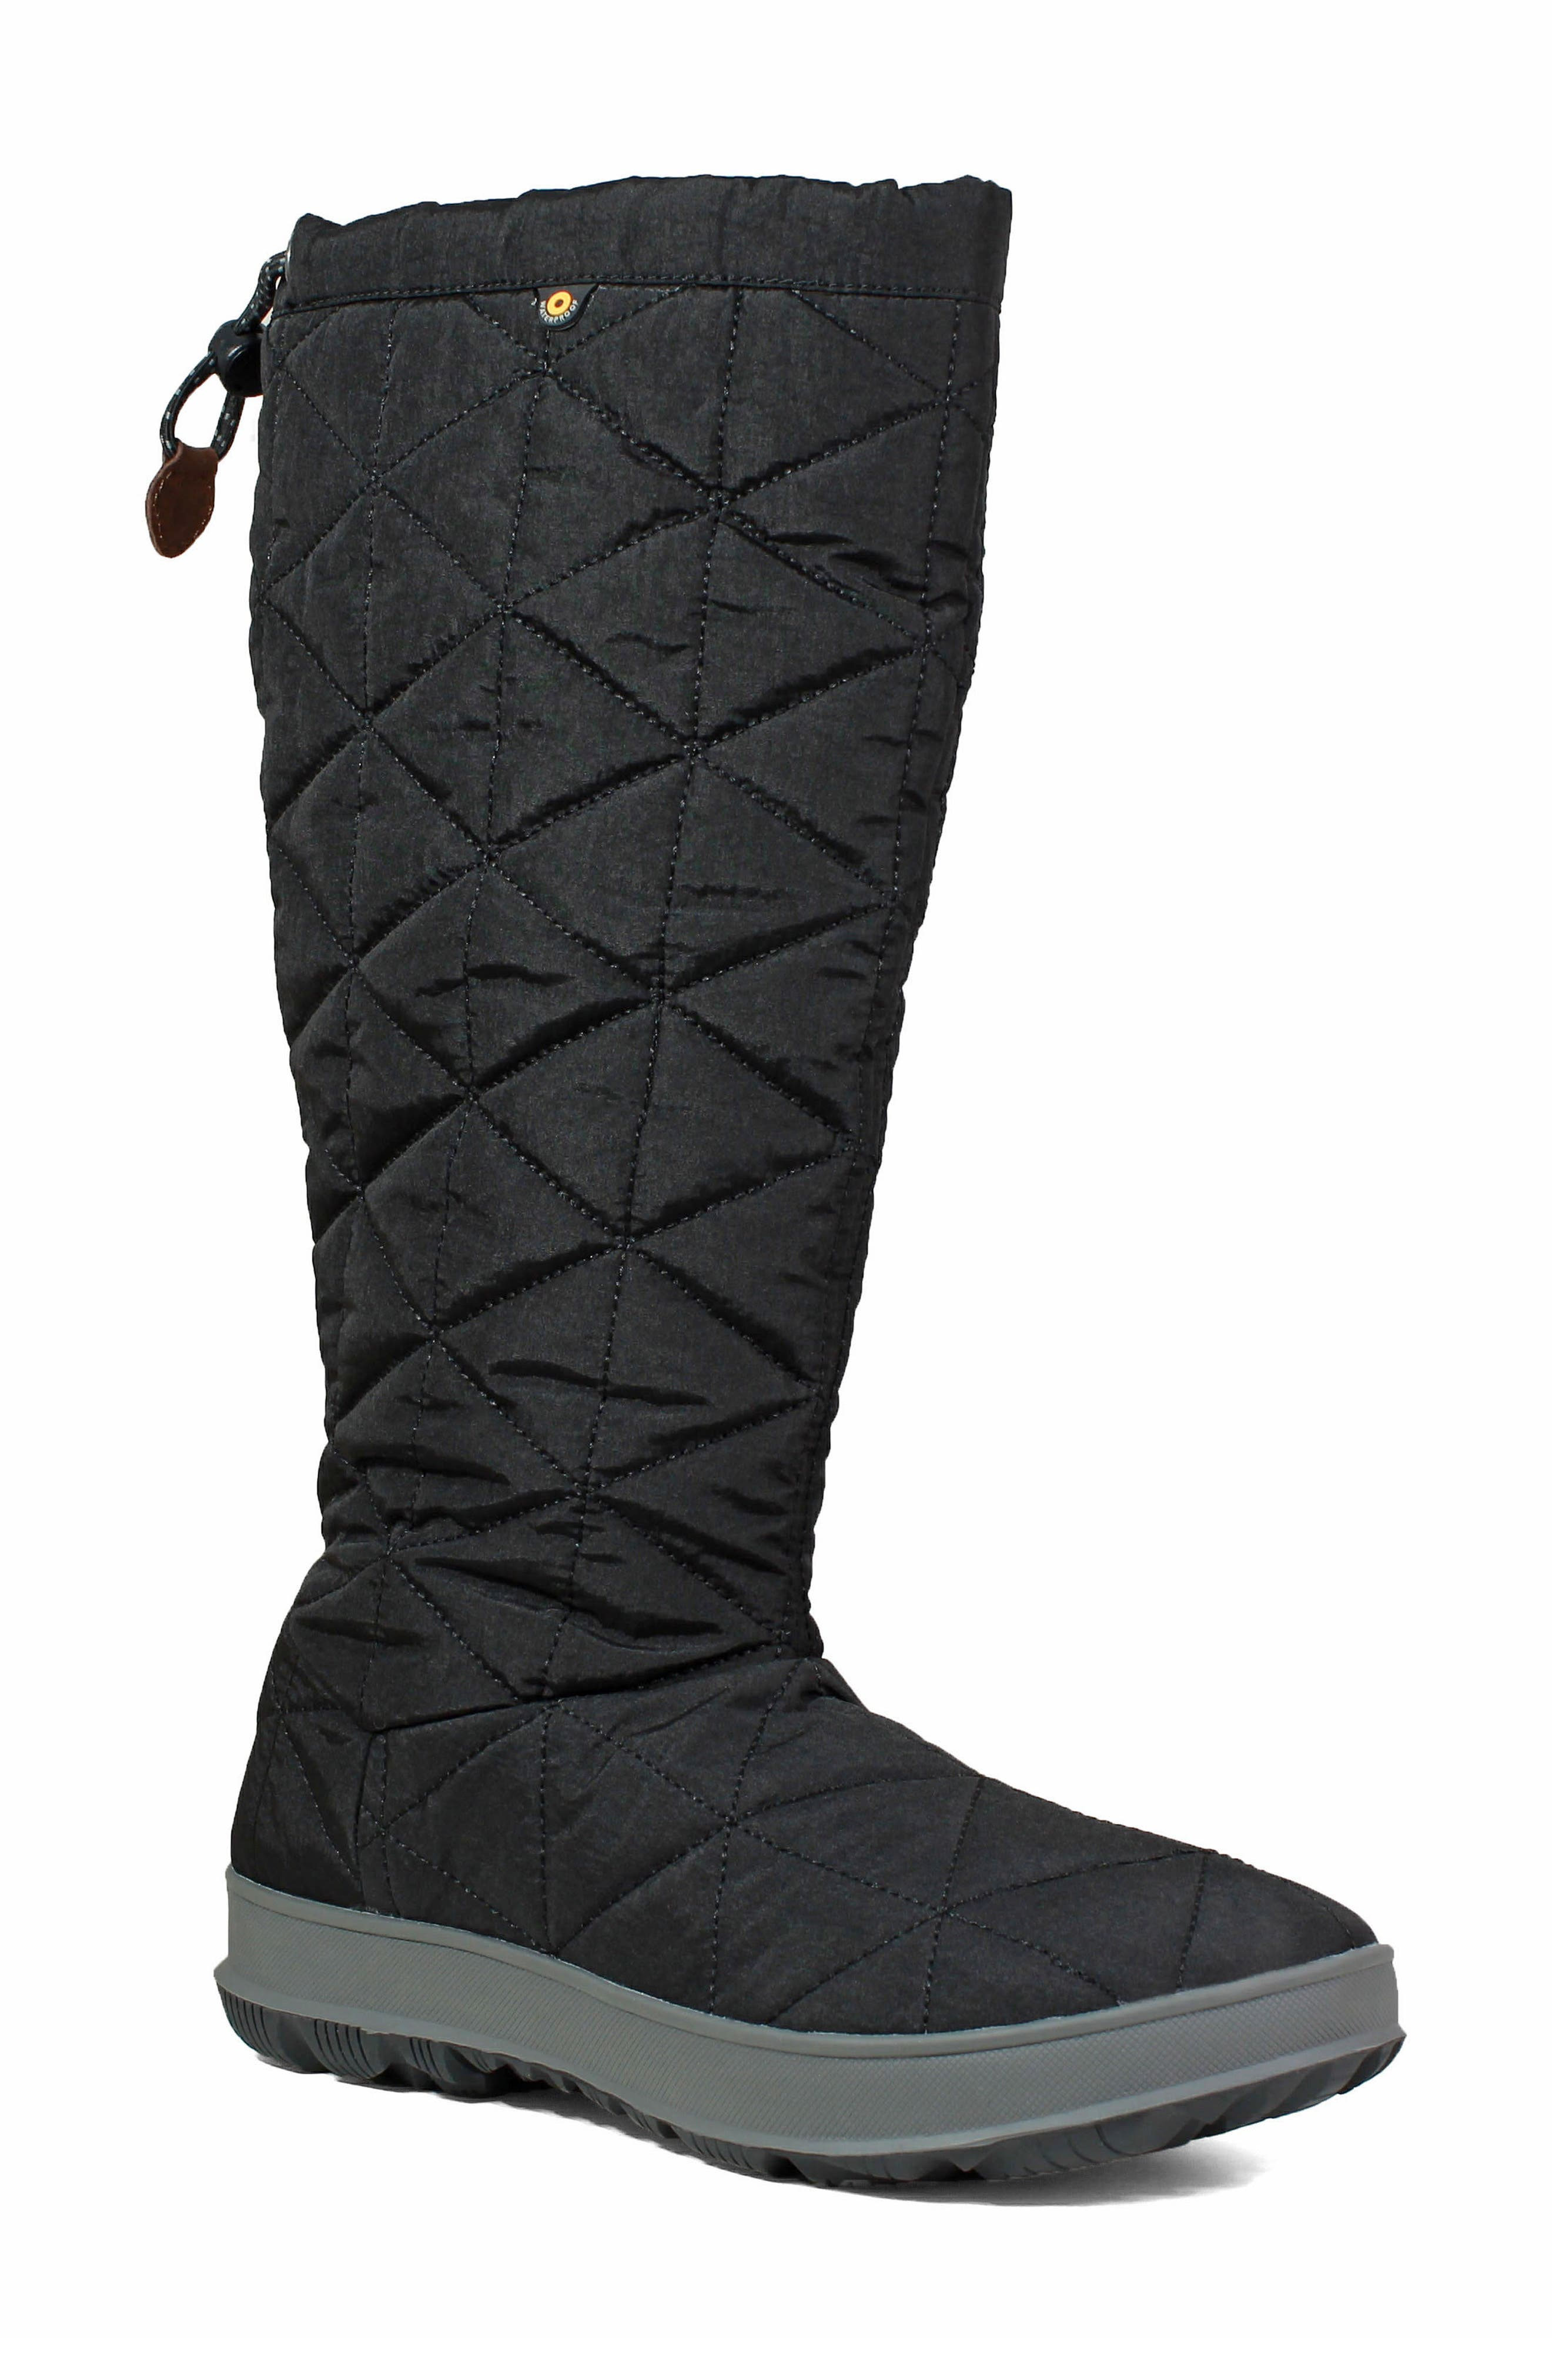 BOGS, Snowday Tall Waterproof Quilted Snow Boot, Main thumbnail 1, color, BLACK